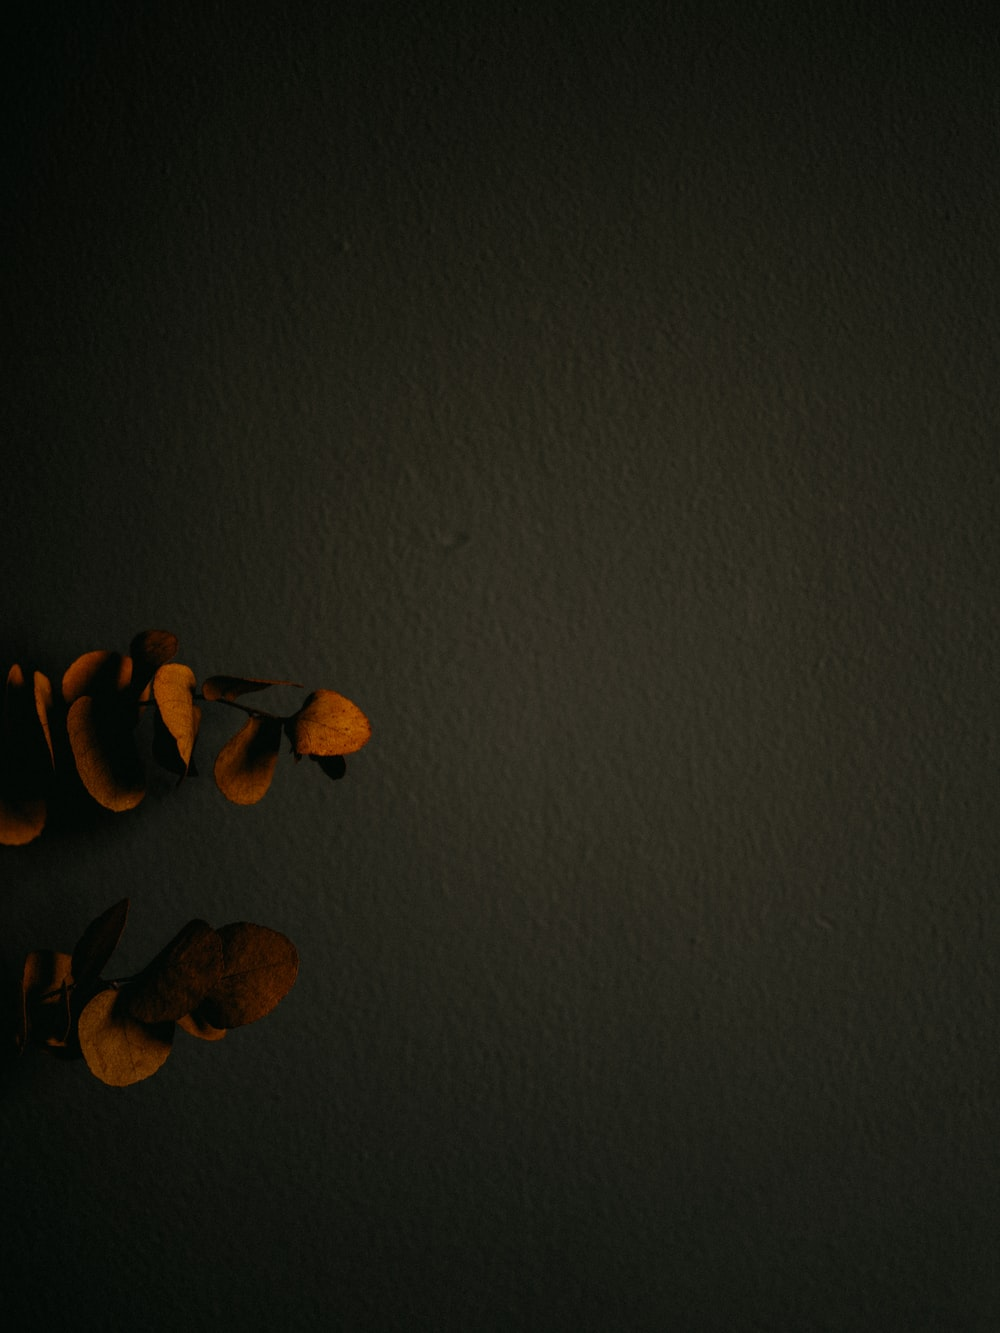 brown and black leaves on gray surface